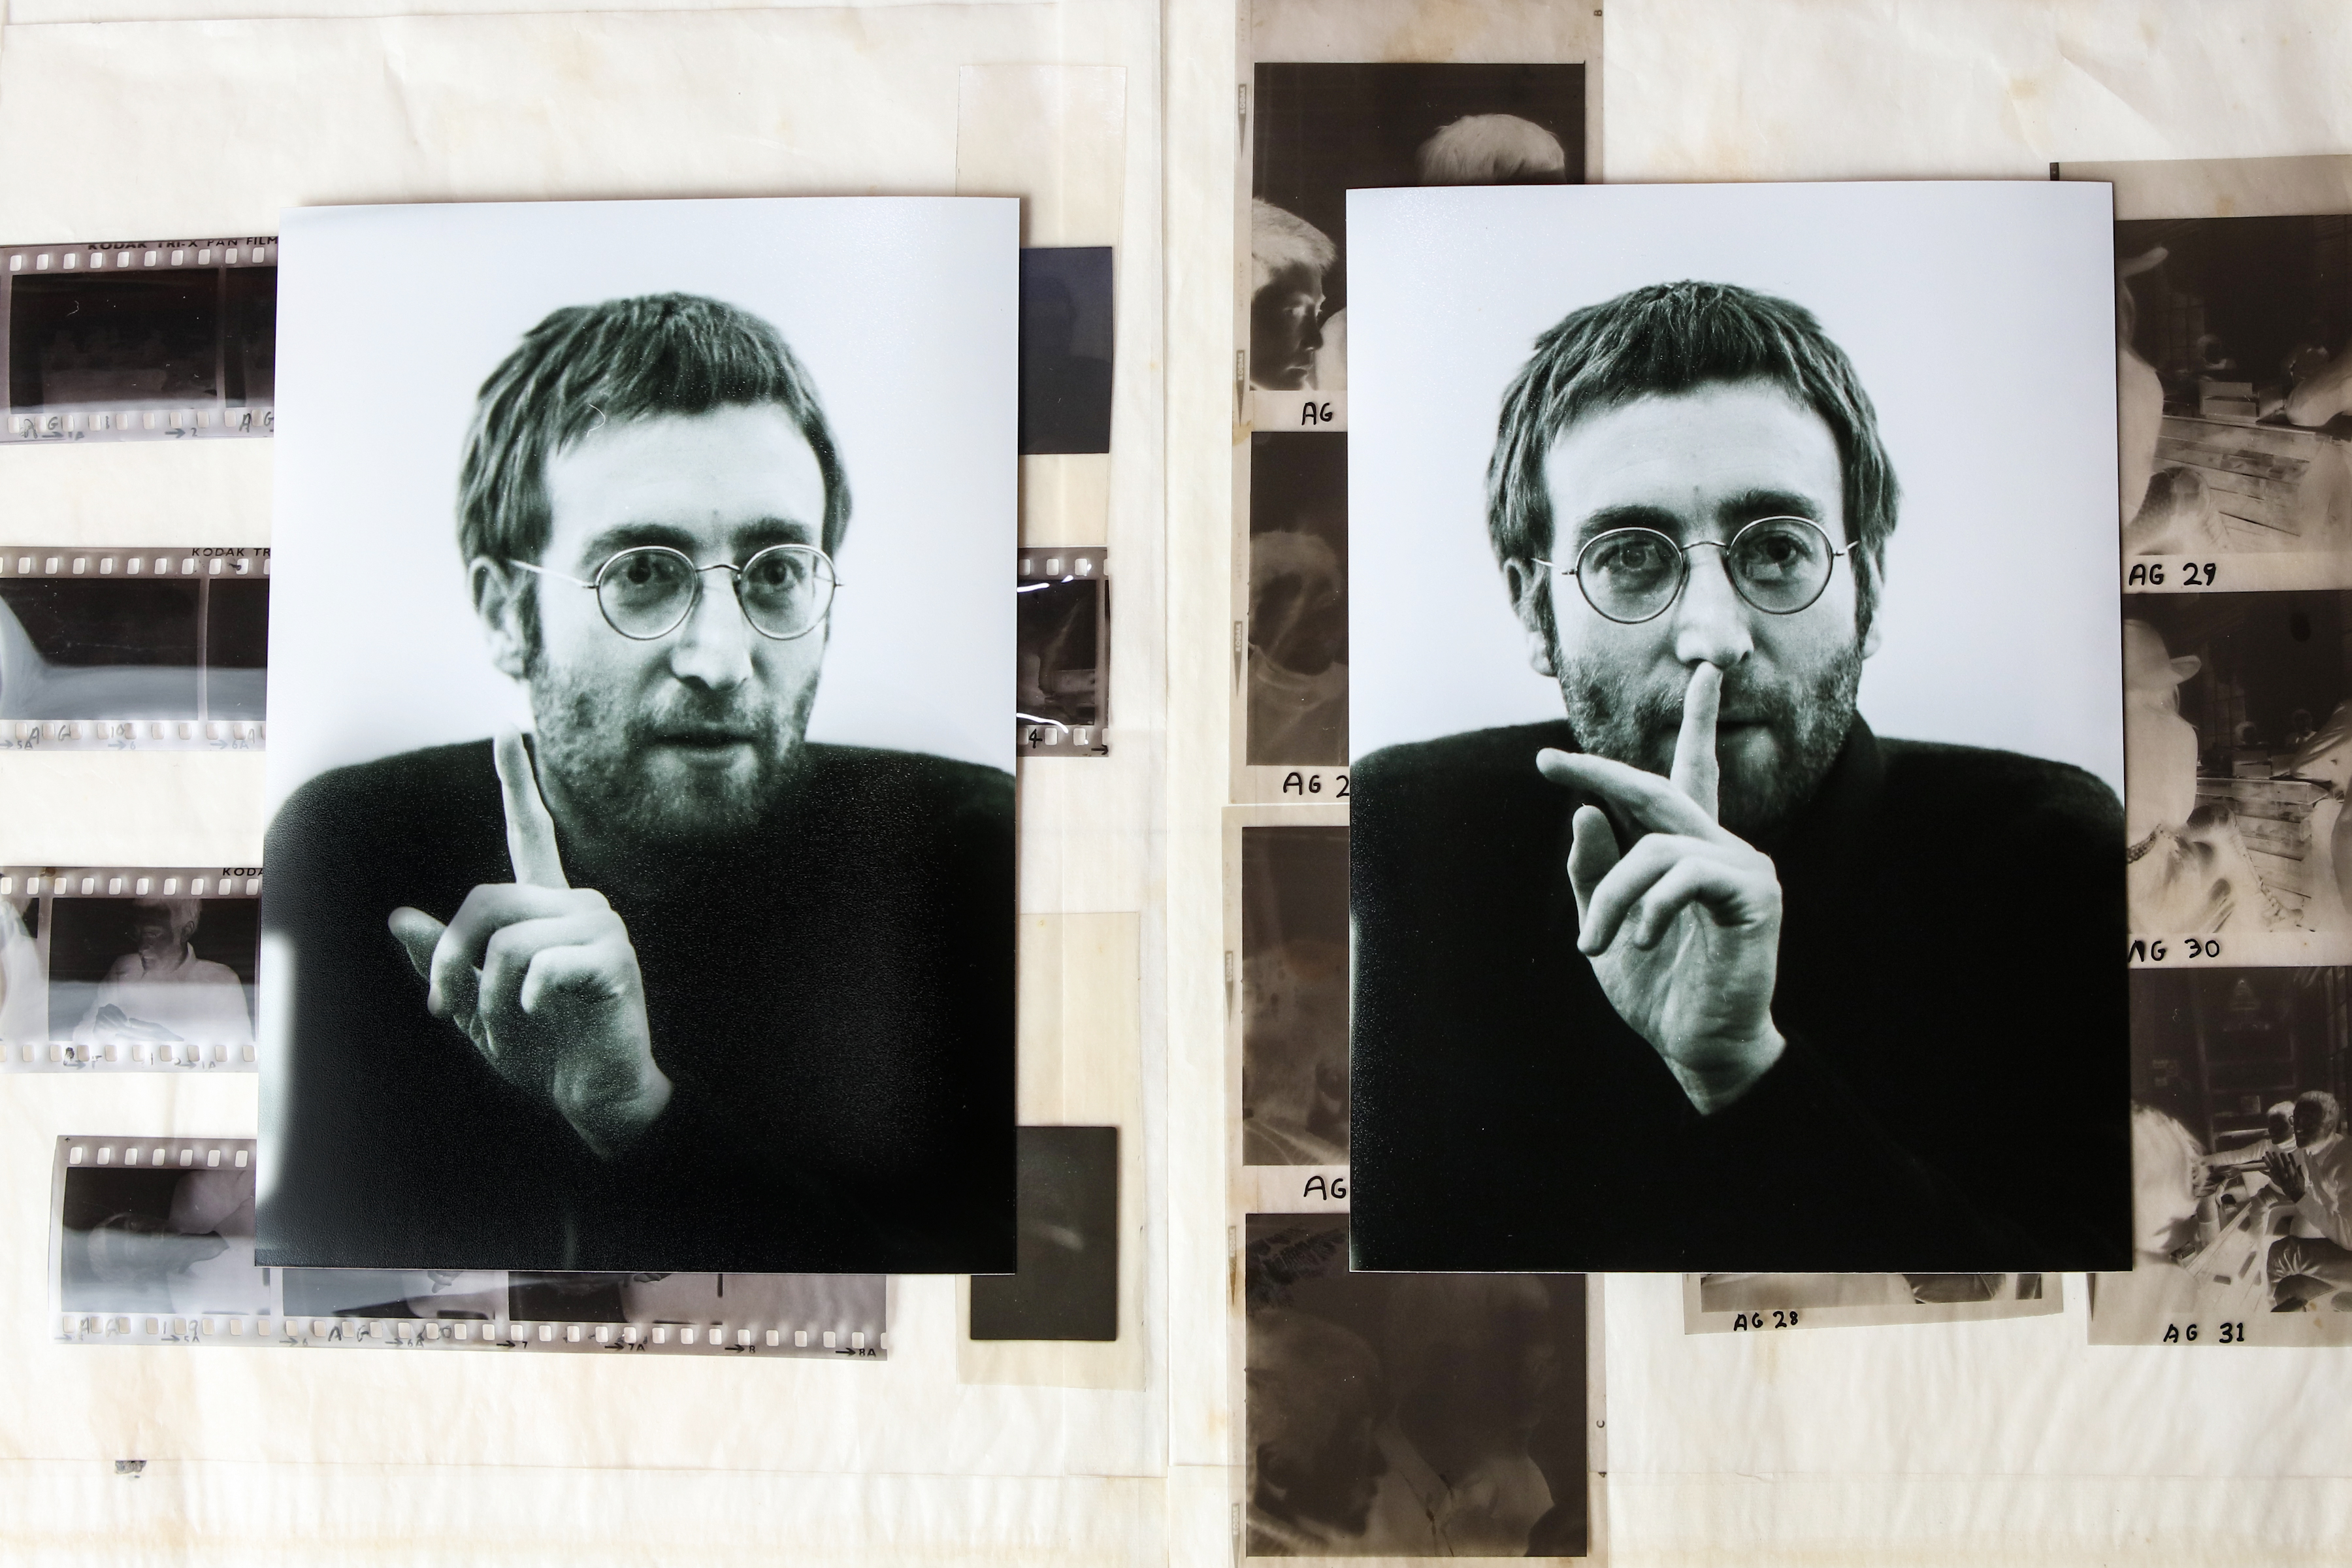 Never before seen John Lennon photos unearthed in Liverpool